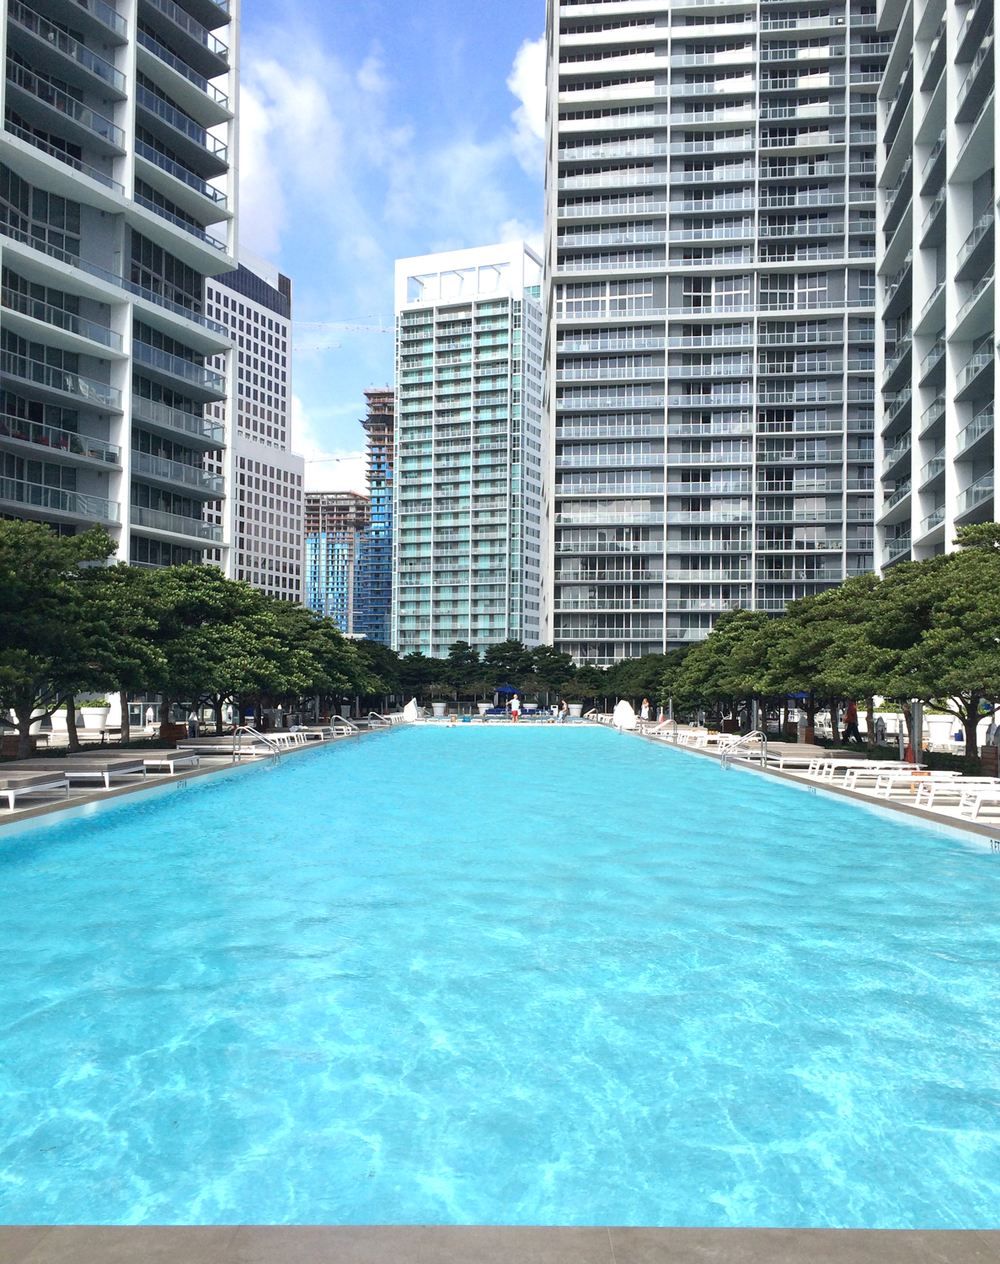 VICEROY_MIAMI_POOL_02.jpg